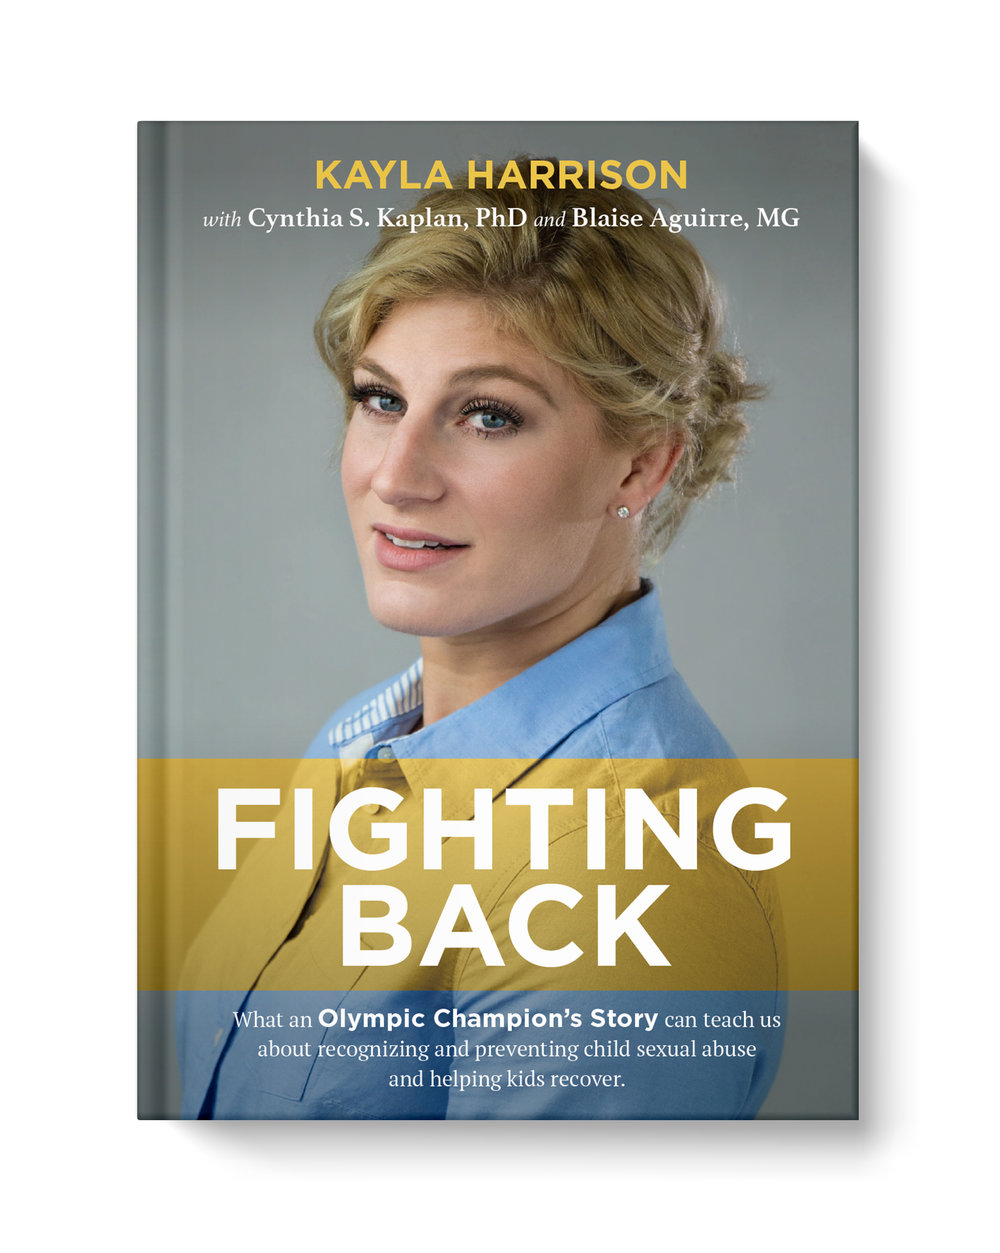 Kayla_Fighting_Back_Book_Cover_1_Comp.jpg